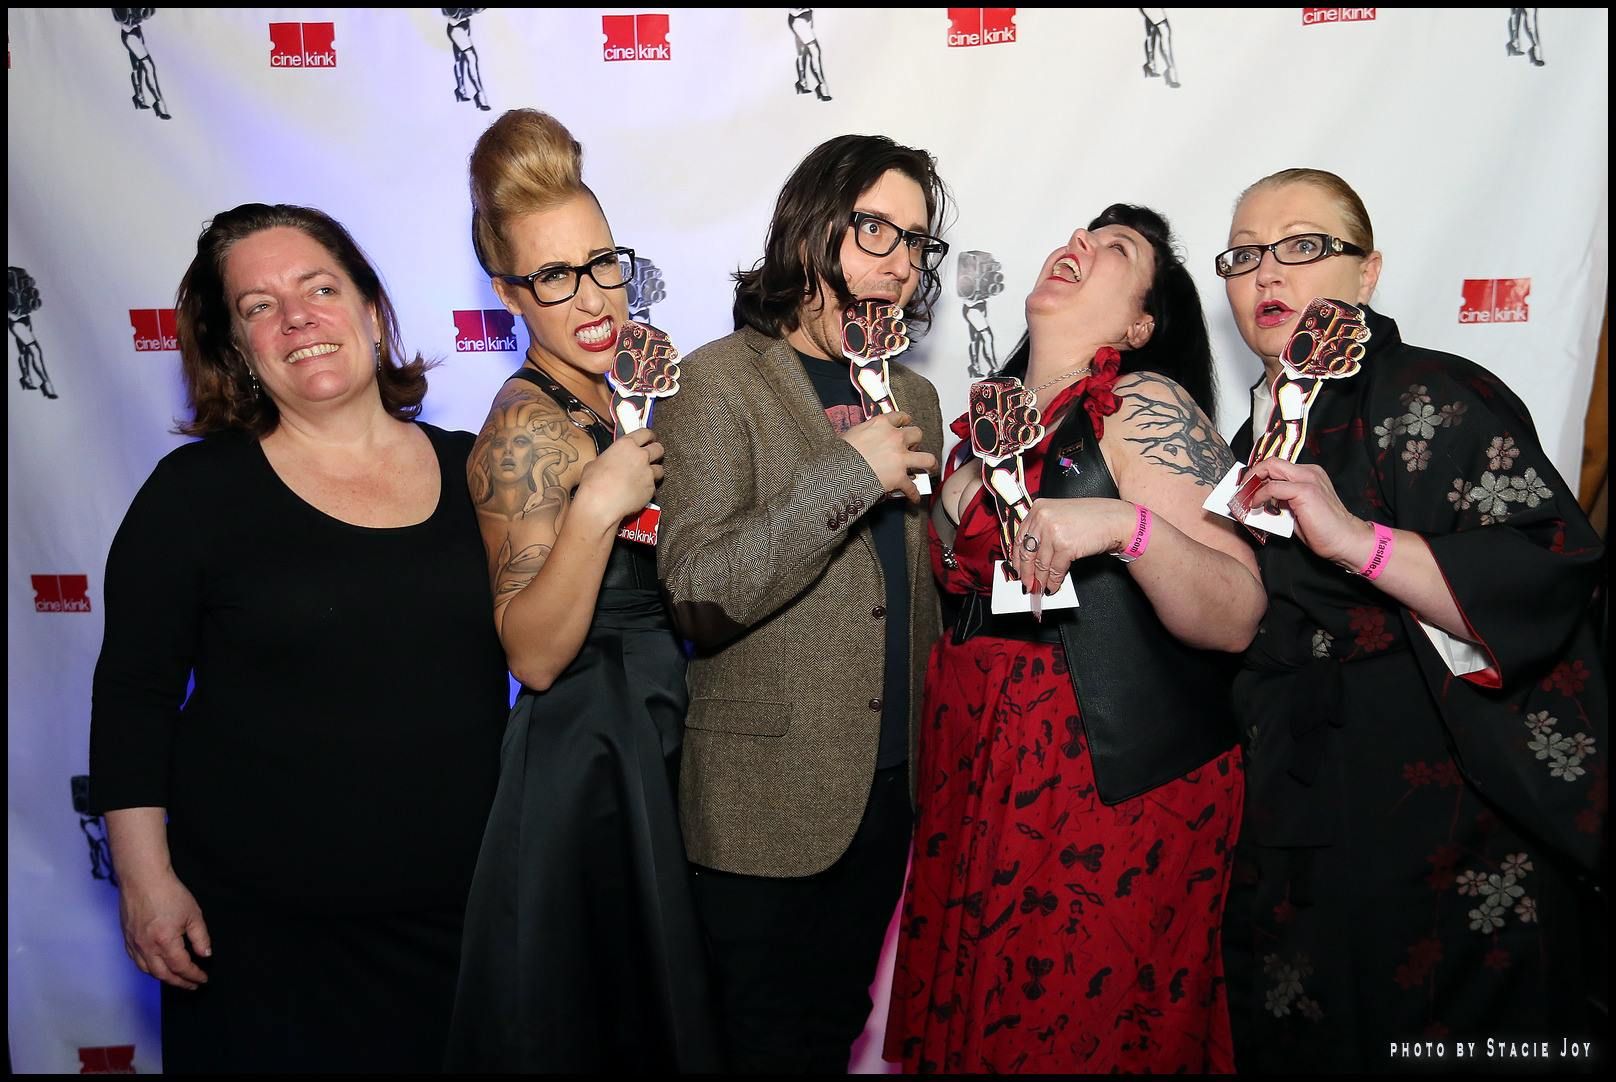 cinekink awards celebration @ Bowery Bliss